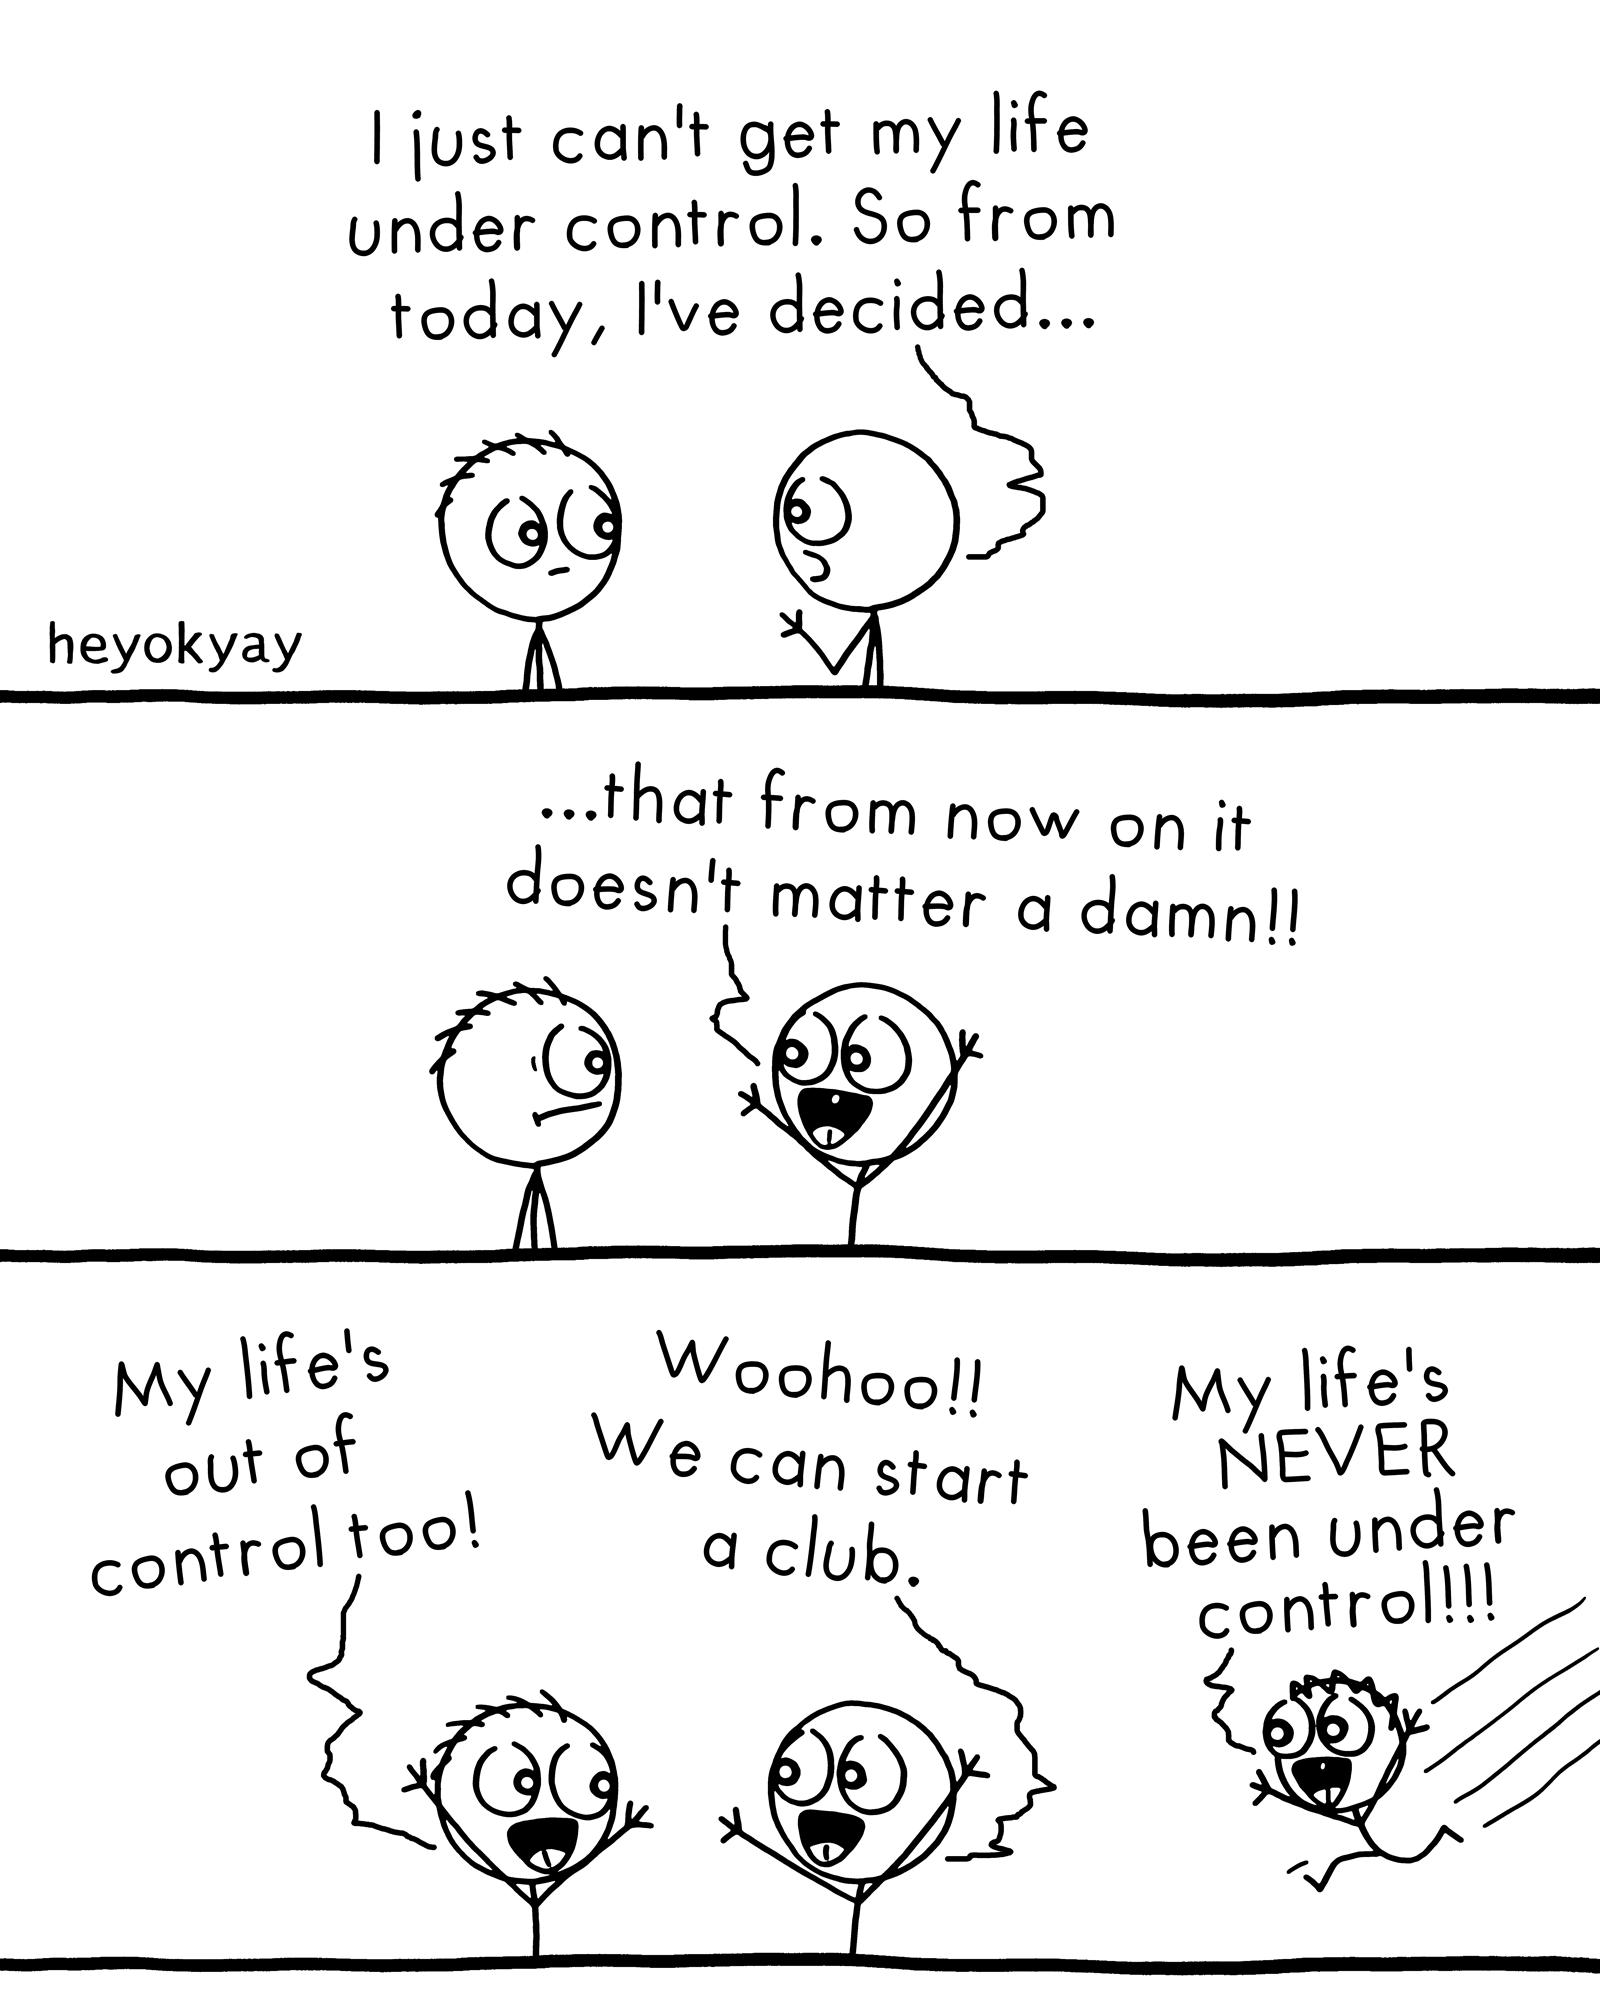 Doesn't Matter heyokyay comic